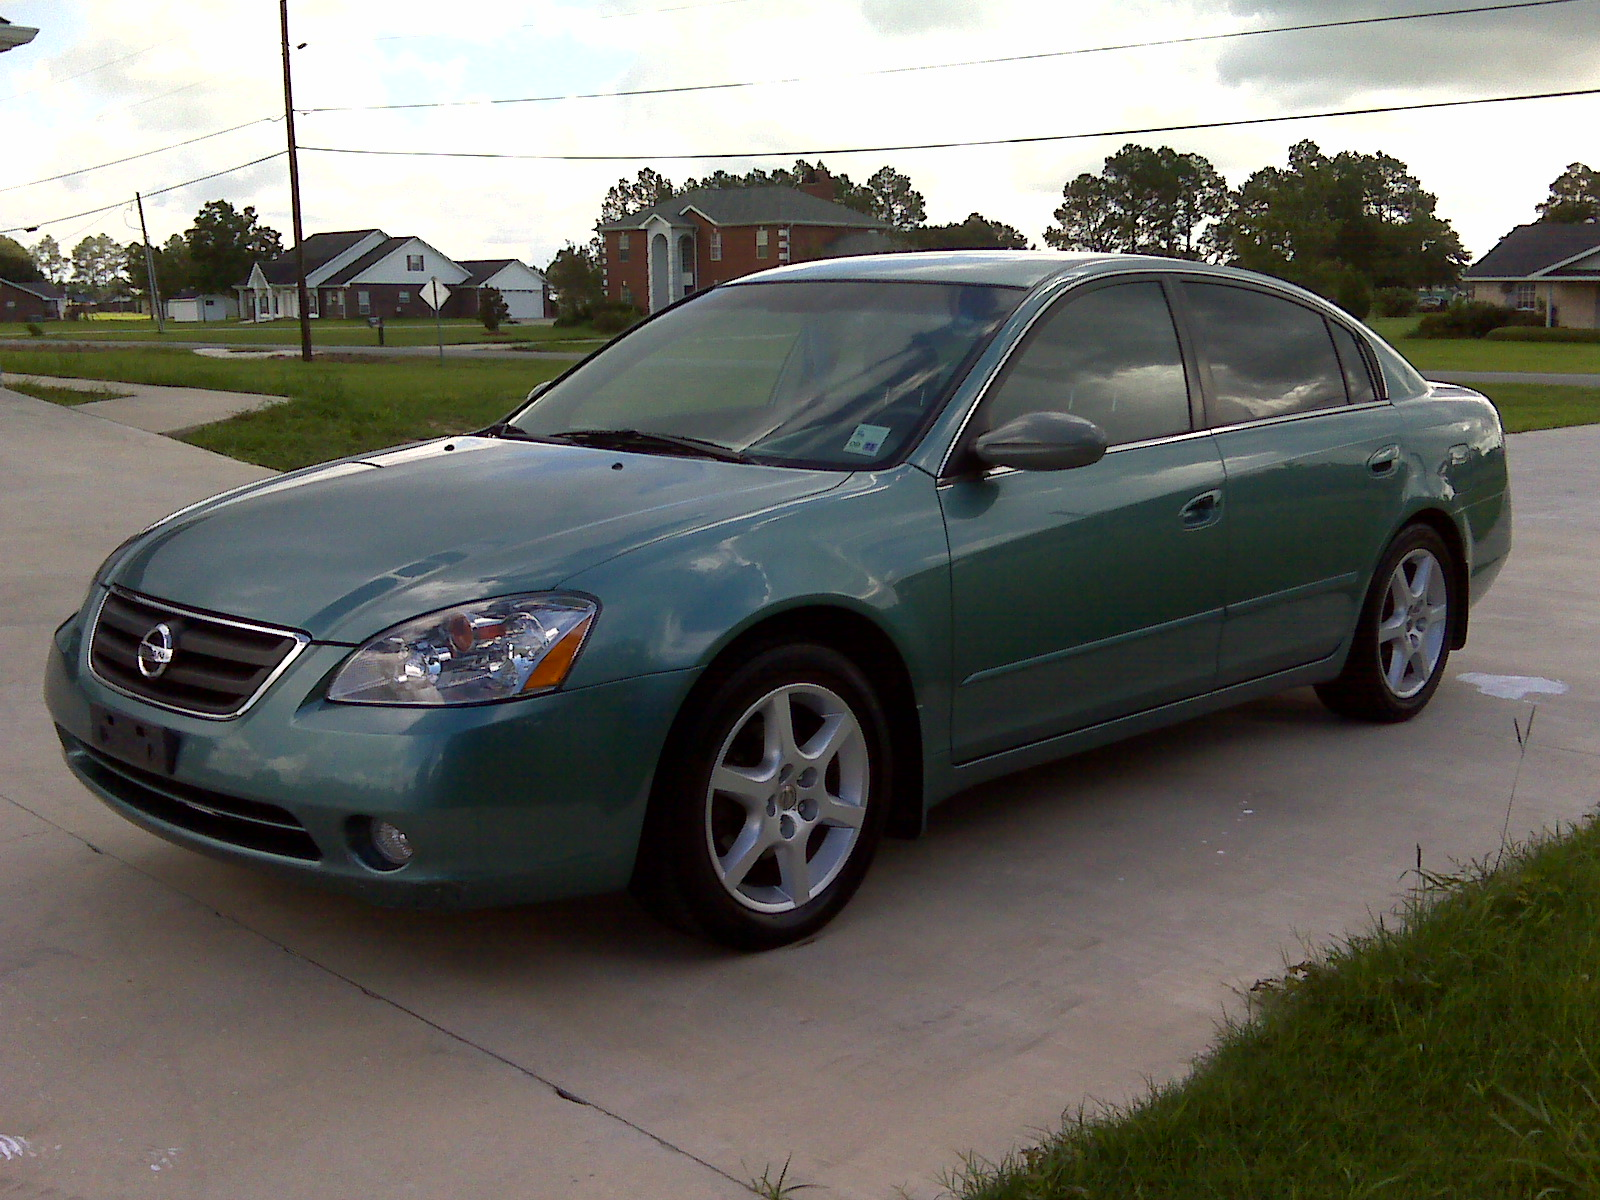 2003 Nissan Altima Fuse Box Location Youtube Car Photo Sl Upcomingcarshqcom